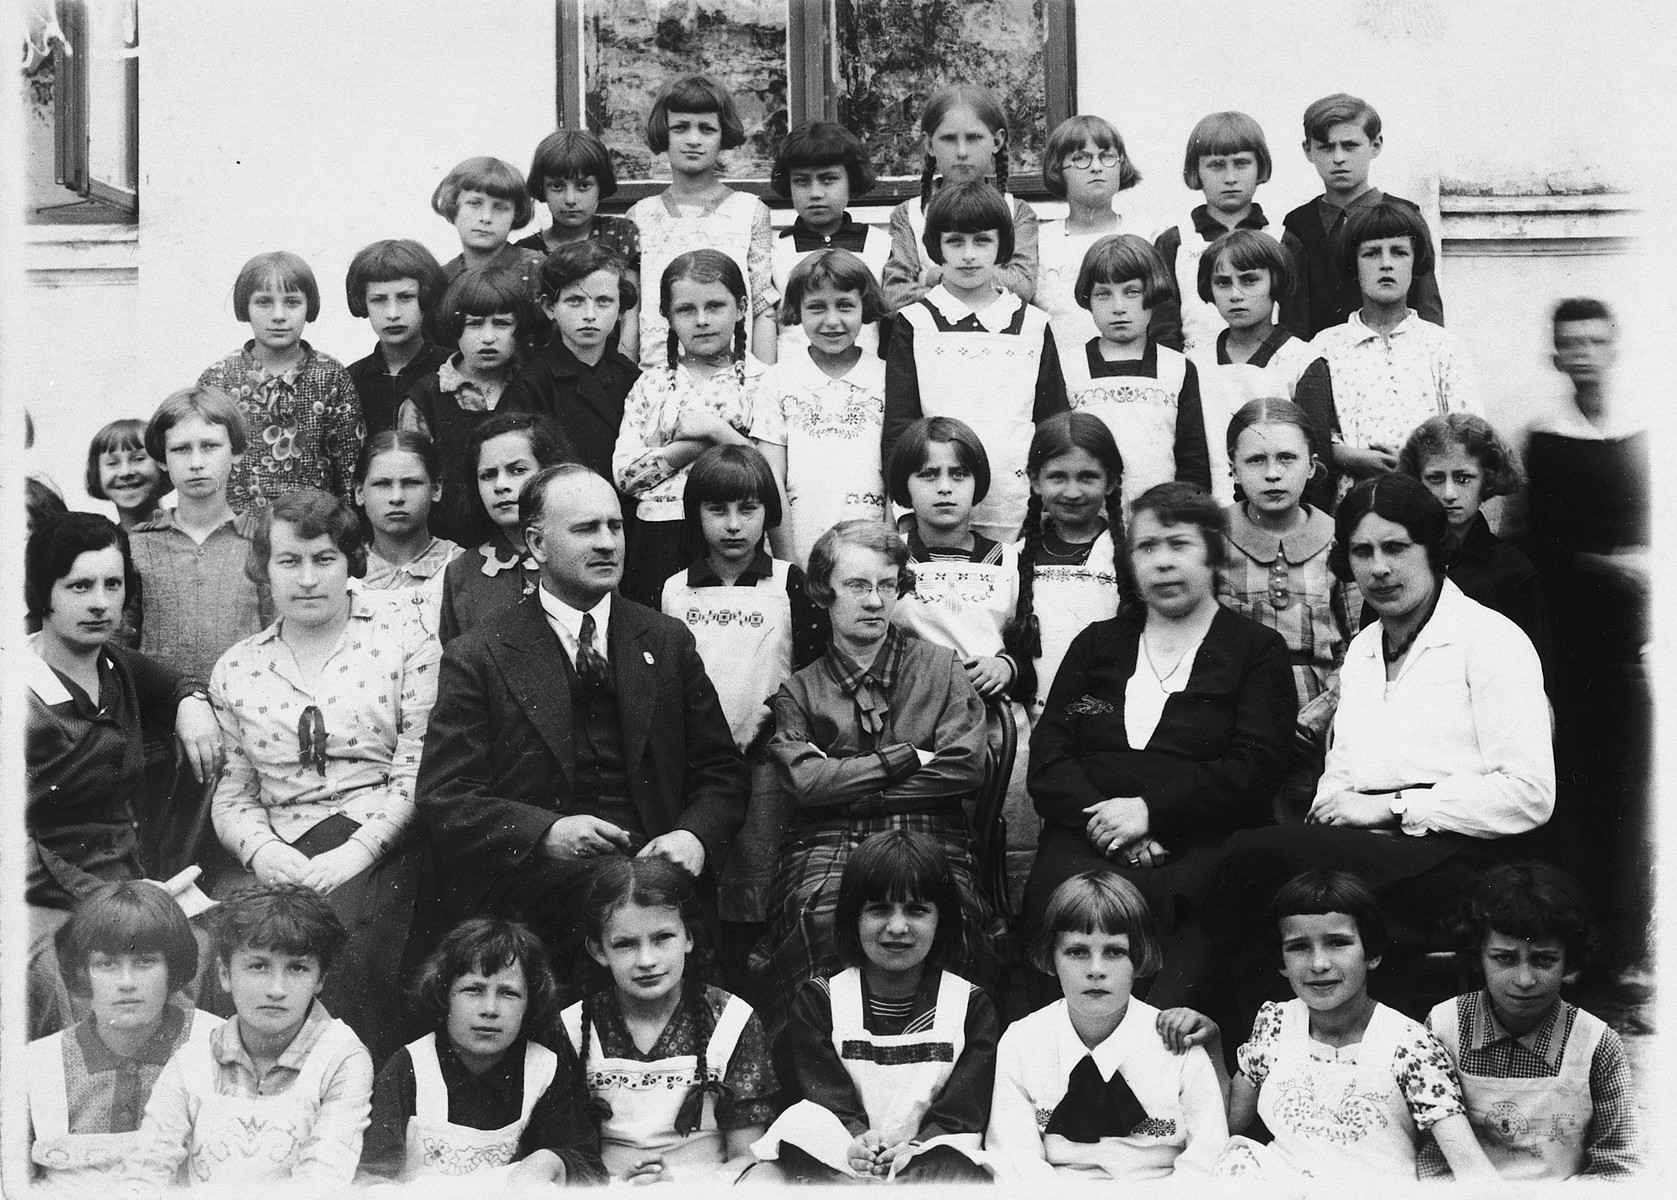 Group portrait of teachers and students at an elementary school for girls in Kolbuszowa.